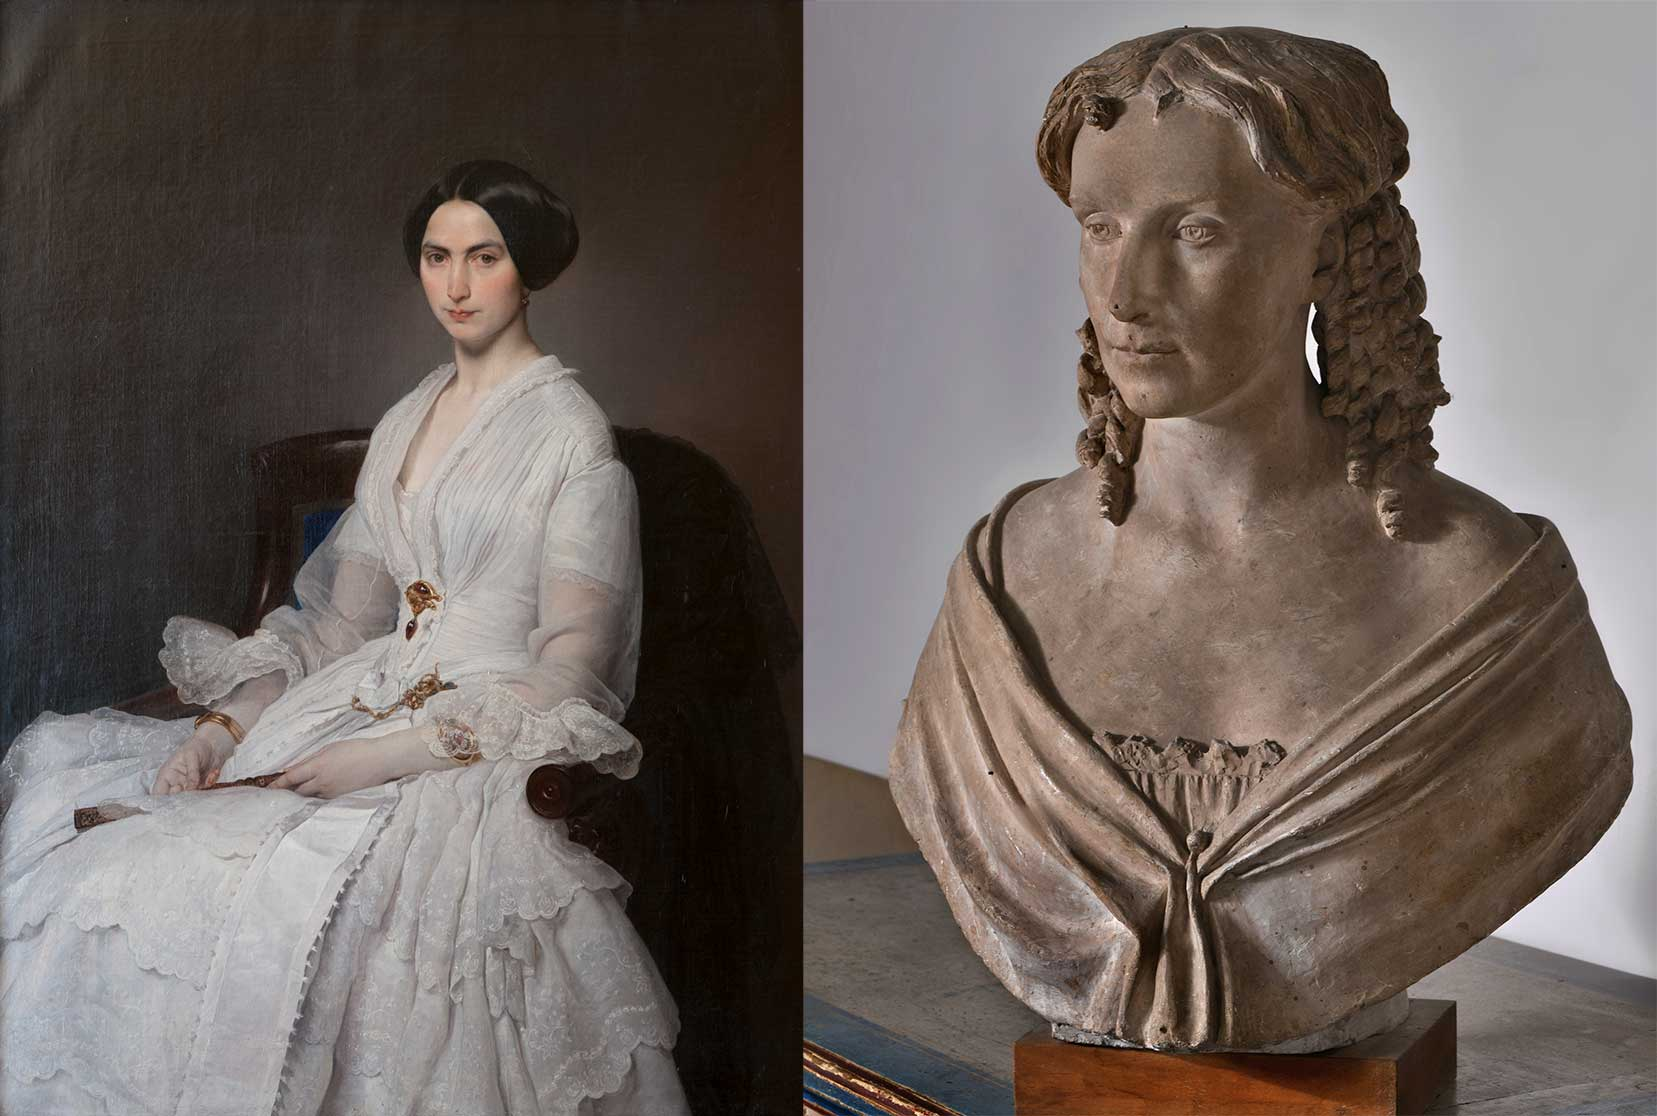 On the left, Francesco Hayez, Ritratto di Selene Taccioli Ruga, 1852. On the right, Lorenzo Bartolini Ritratto di Anna Maria Virginia Buoni, 1835 circa.